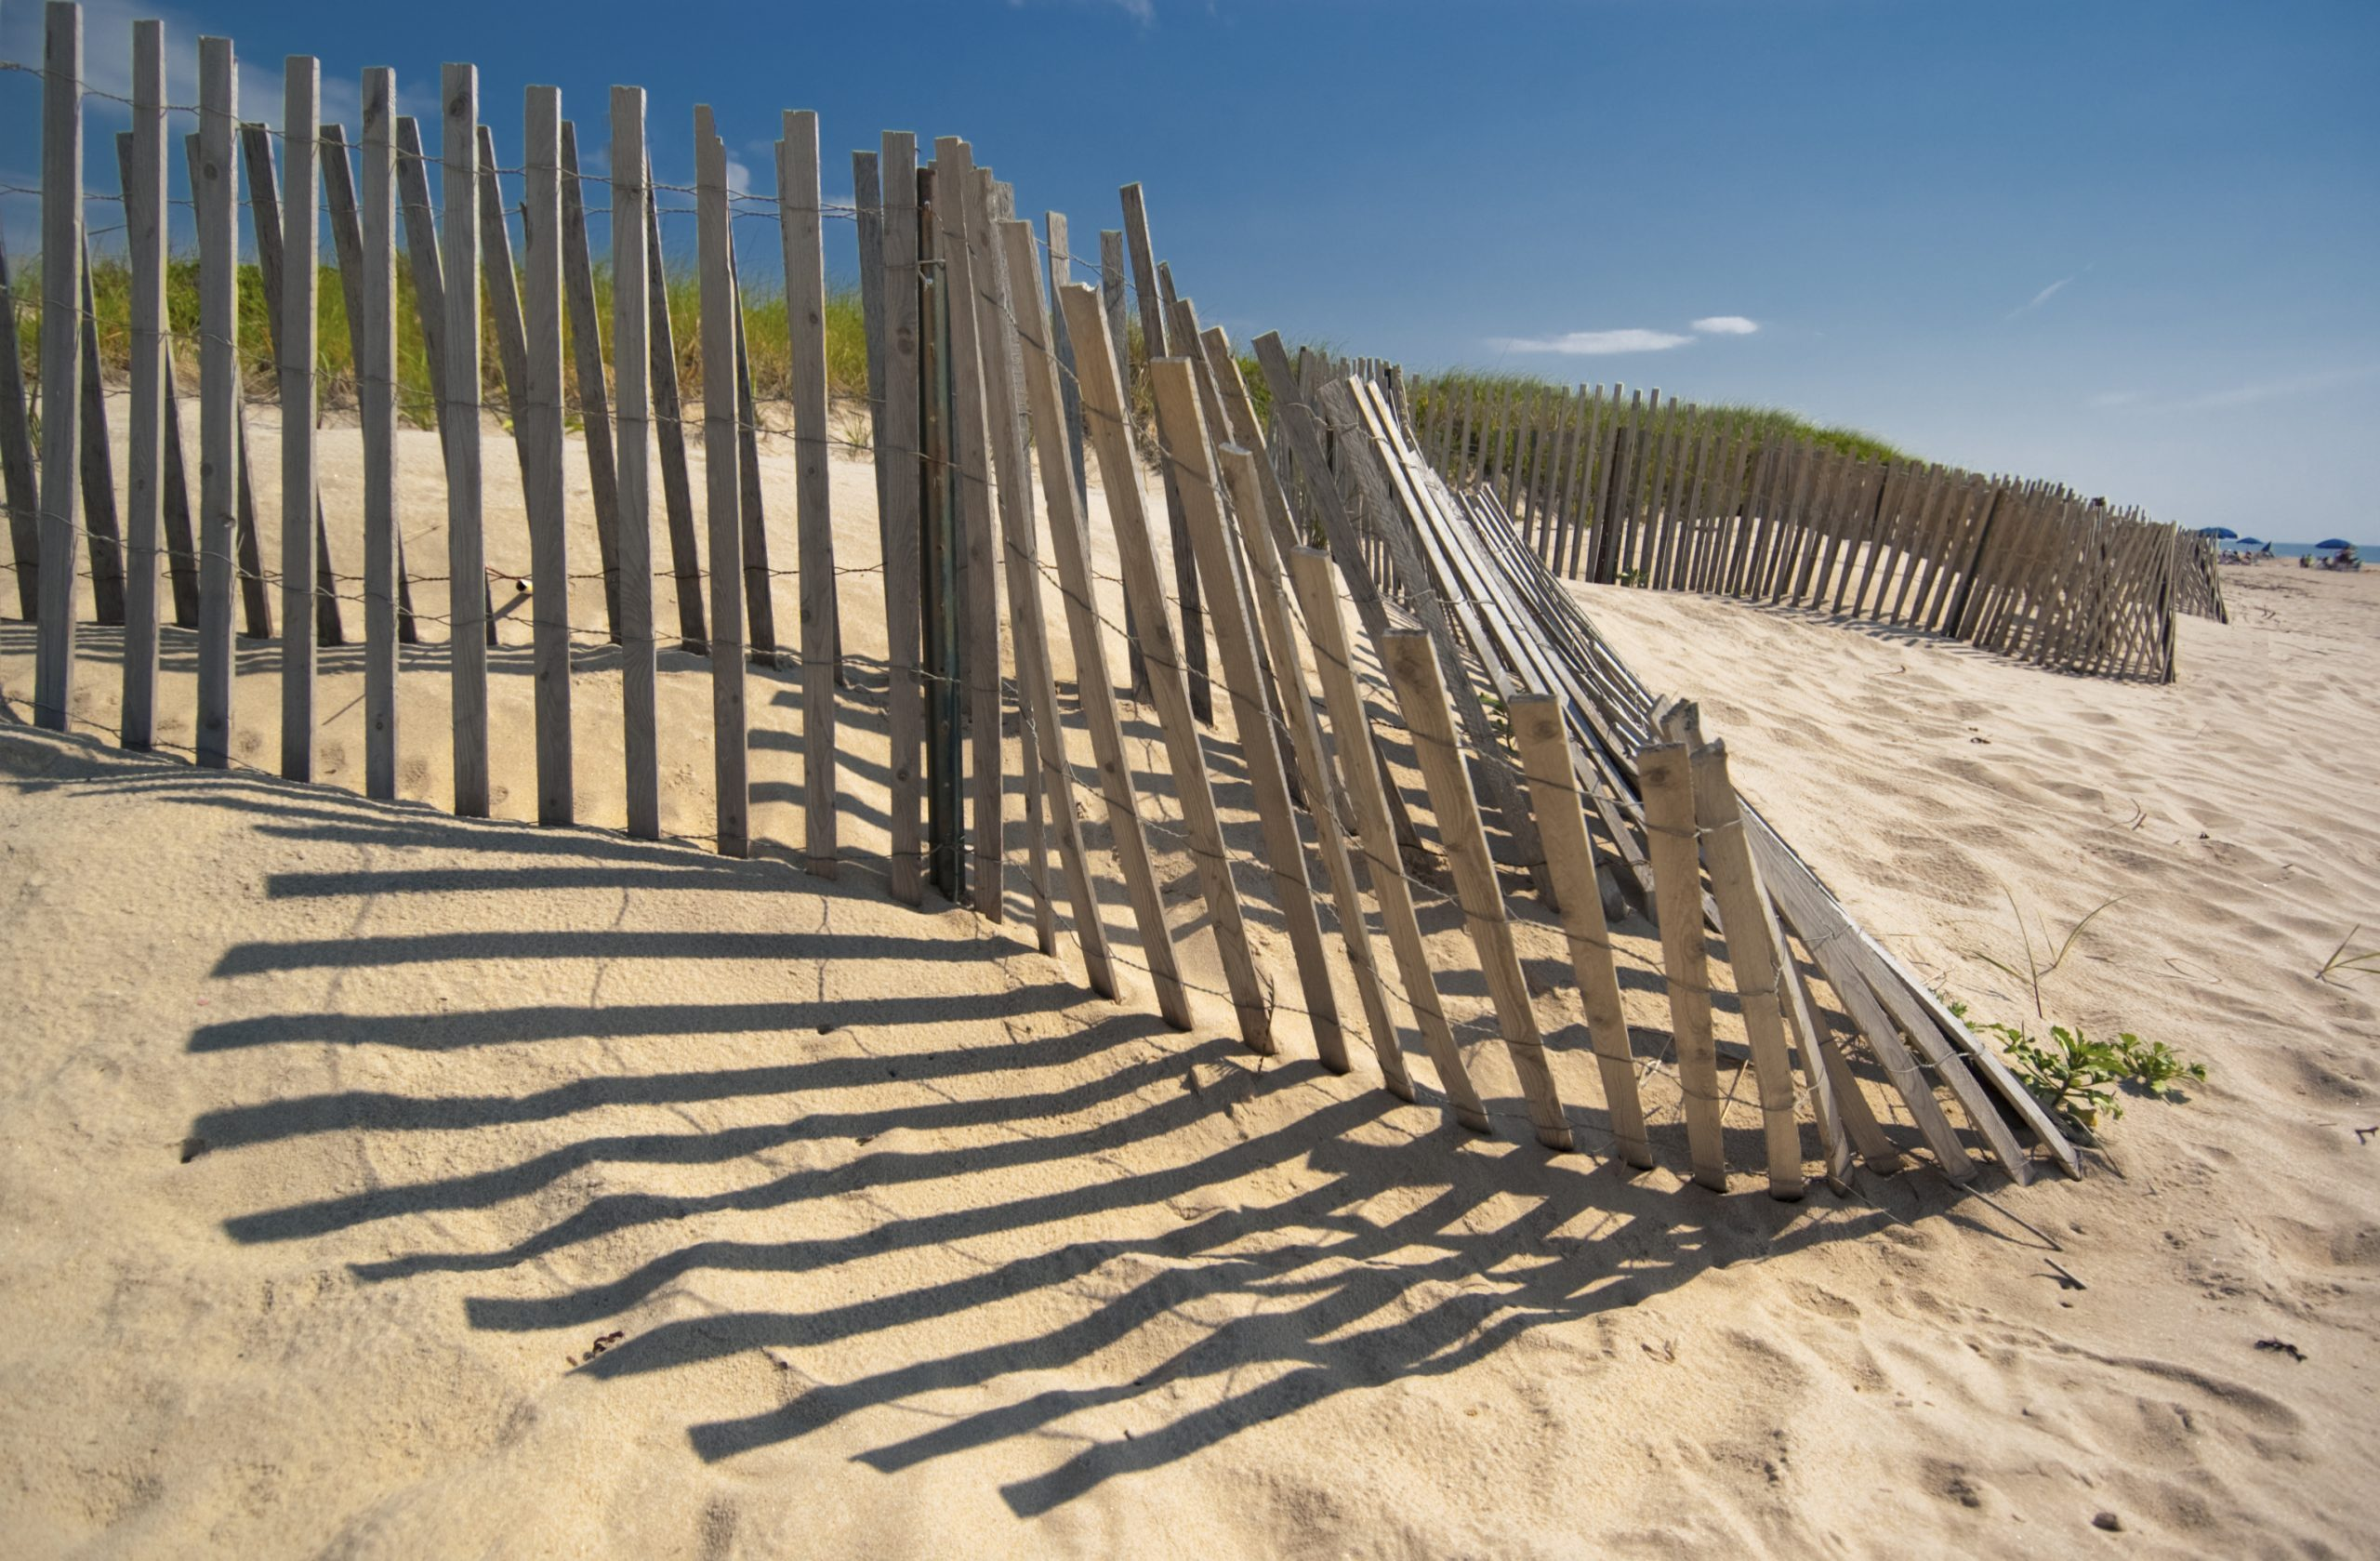 The low sun casts long shadows of a wooden fence on a sandy dune by the ocean at Amagansett beach, in the Hamptons, New York